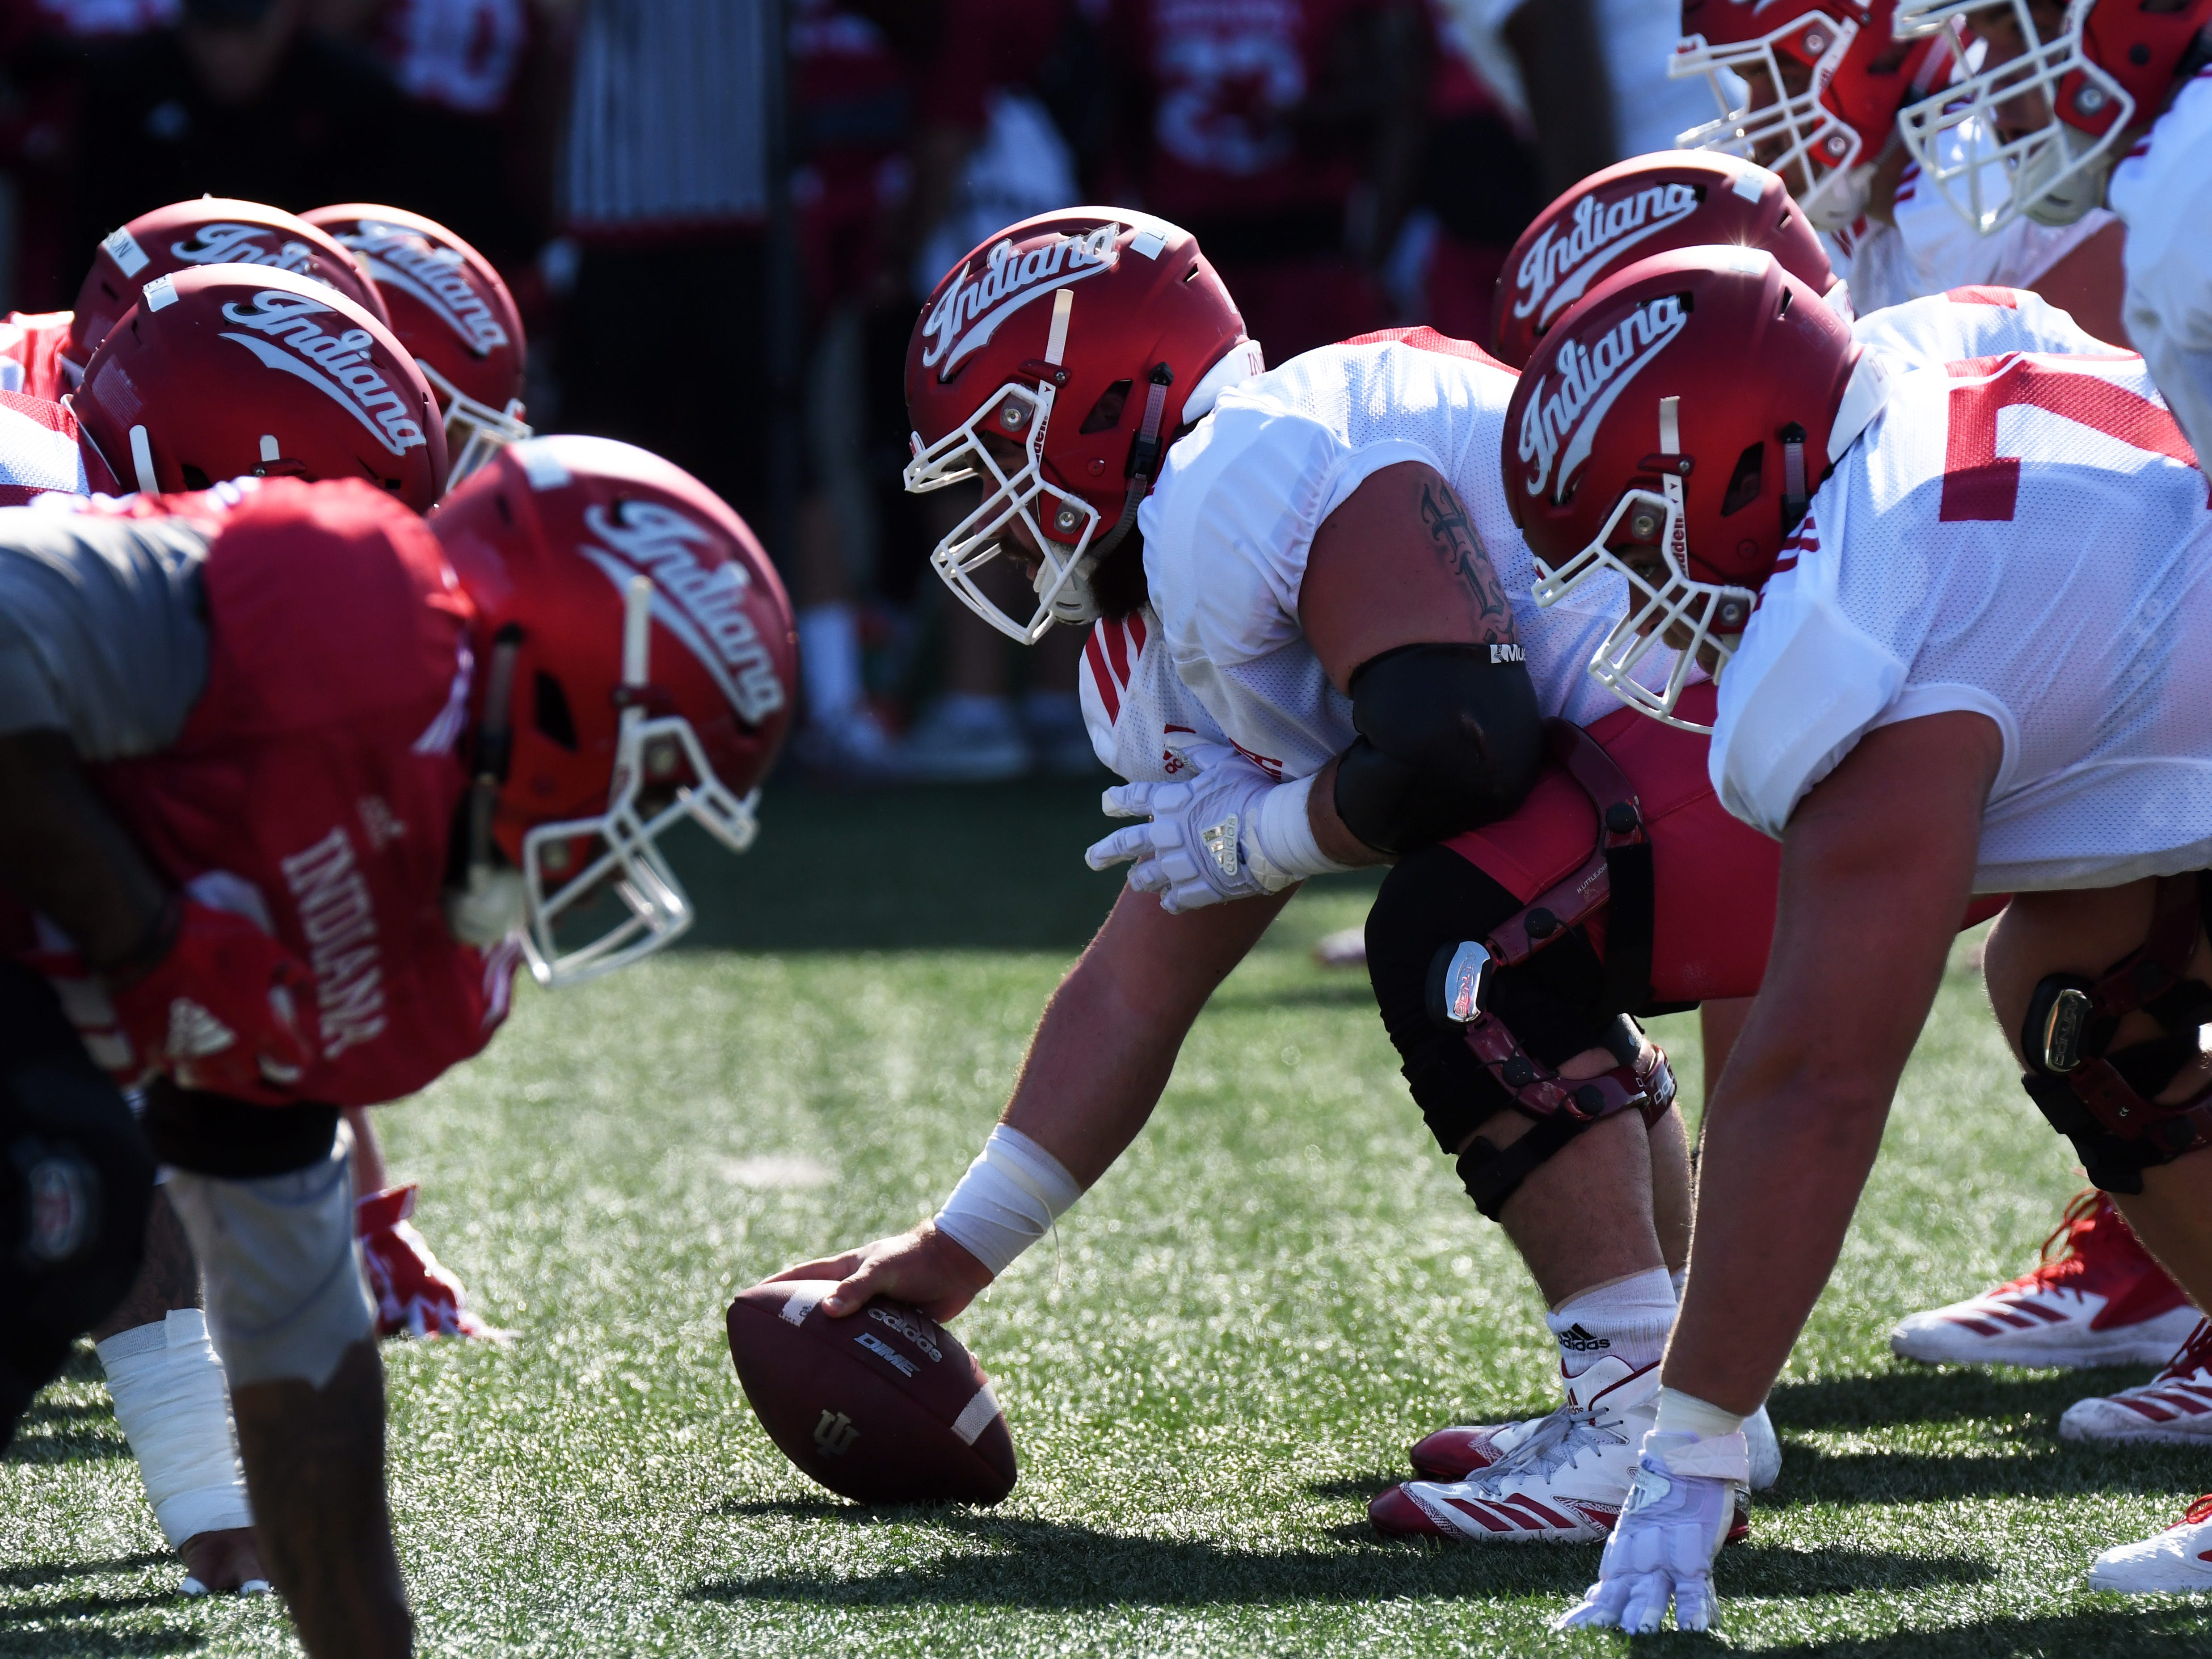 Indiana lines up during practice at Mellencamp Pavilion in Bloomington, Ind., on Monday, August 6, 2018.